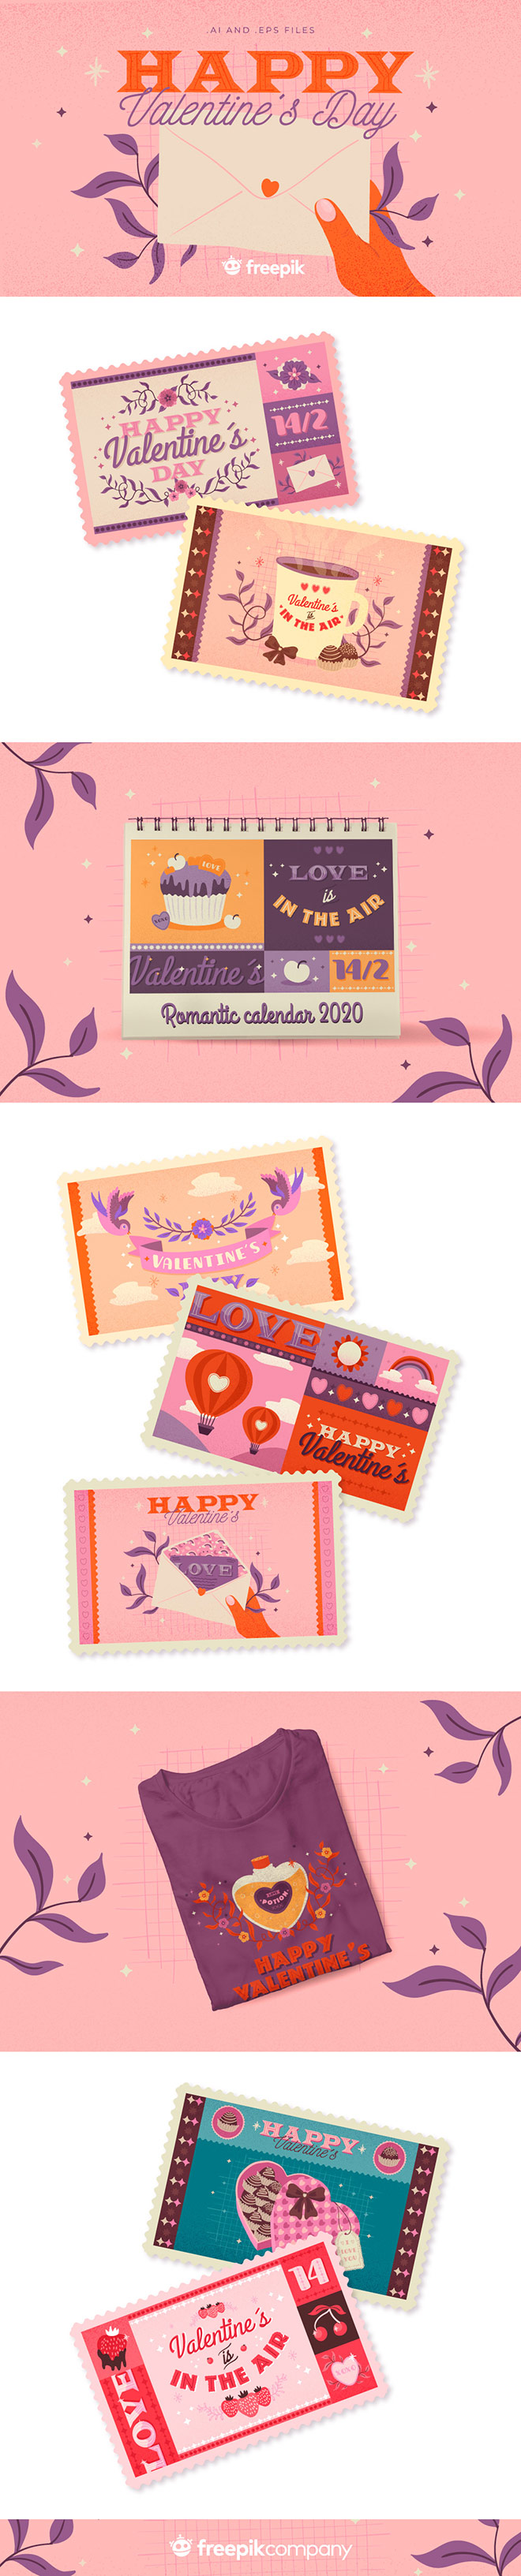 10 designs for Valentine's Day for access to all member areas